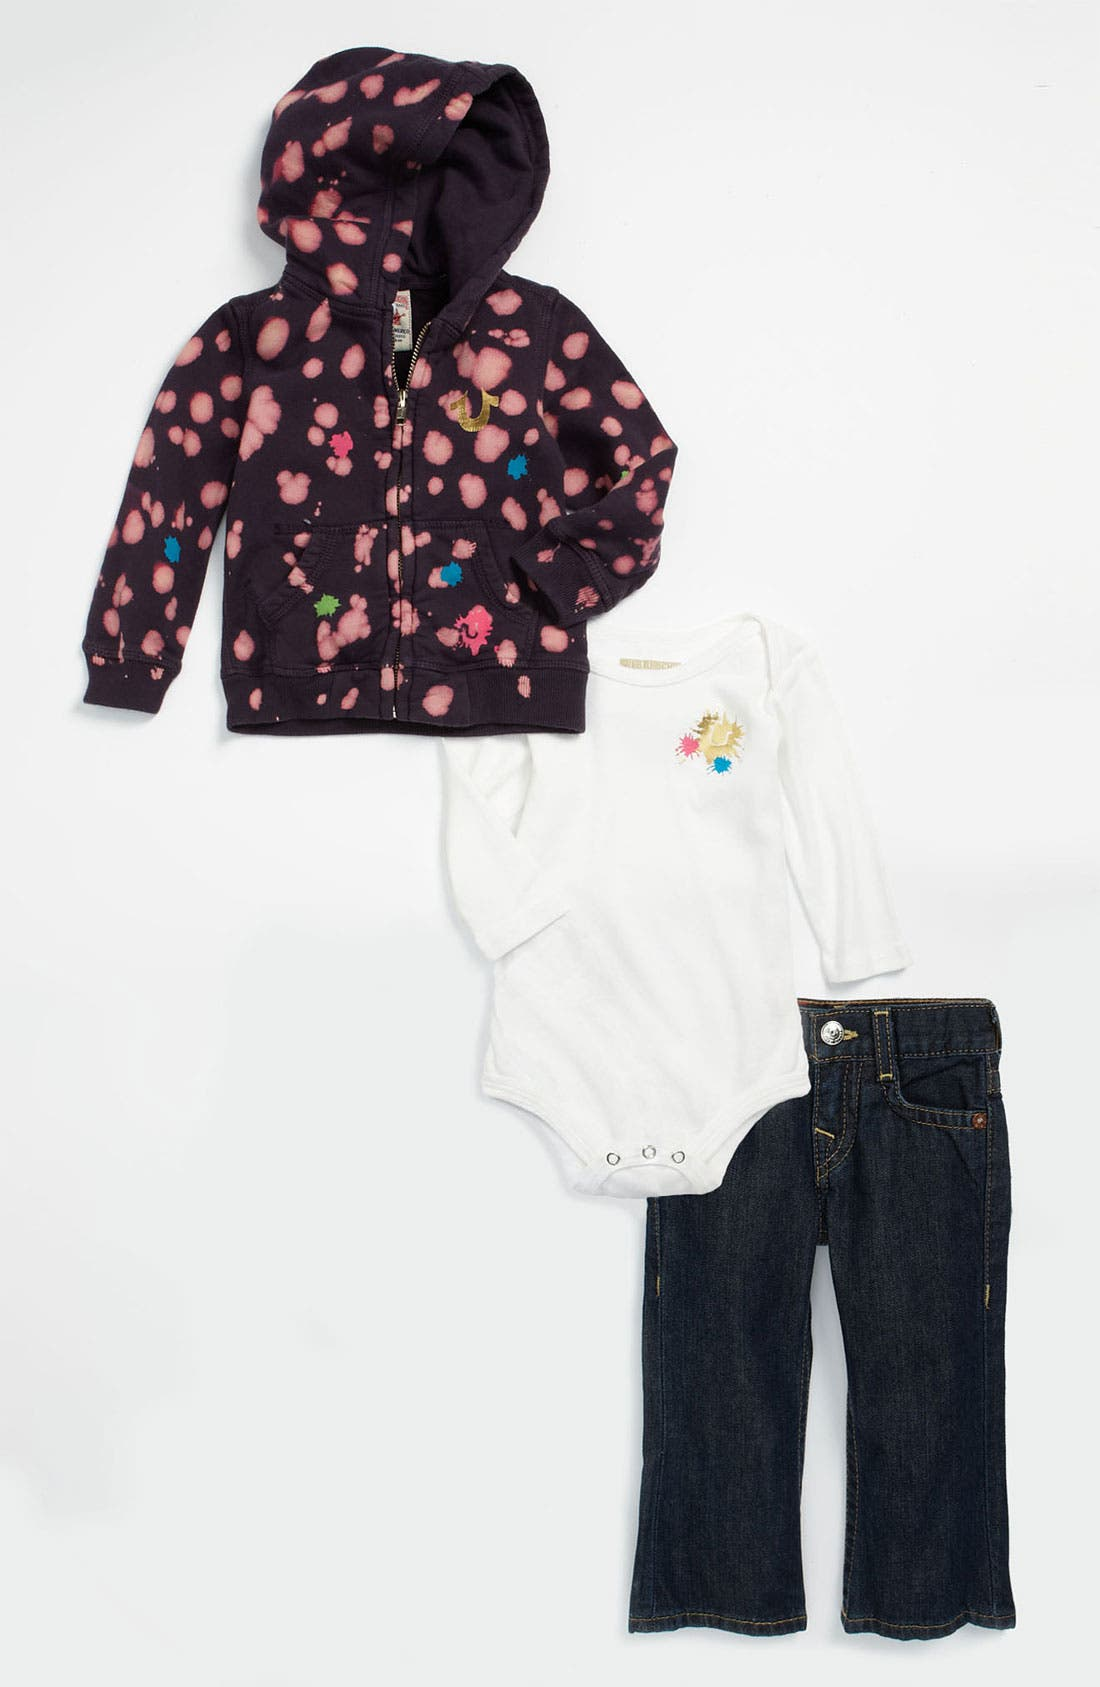 Alternate Image 1 Selected - True Religion Brand Jeans Bodysuit, Jeans & Hoodie Gift Set (Infant)